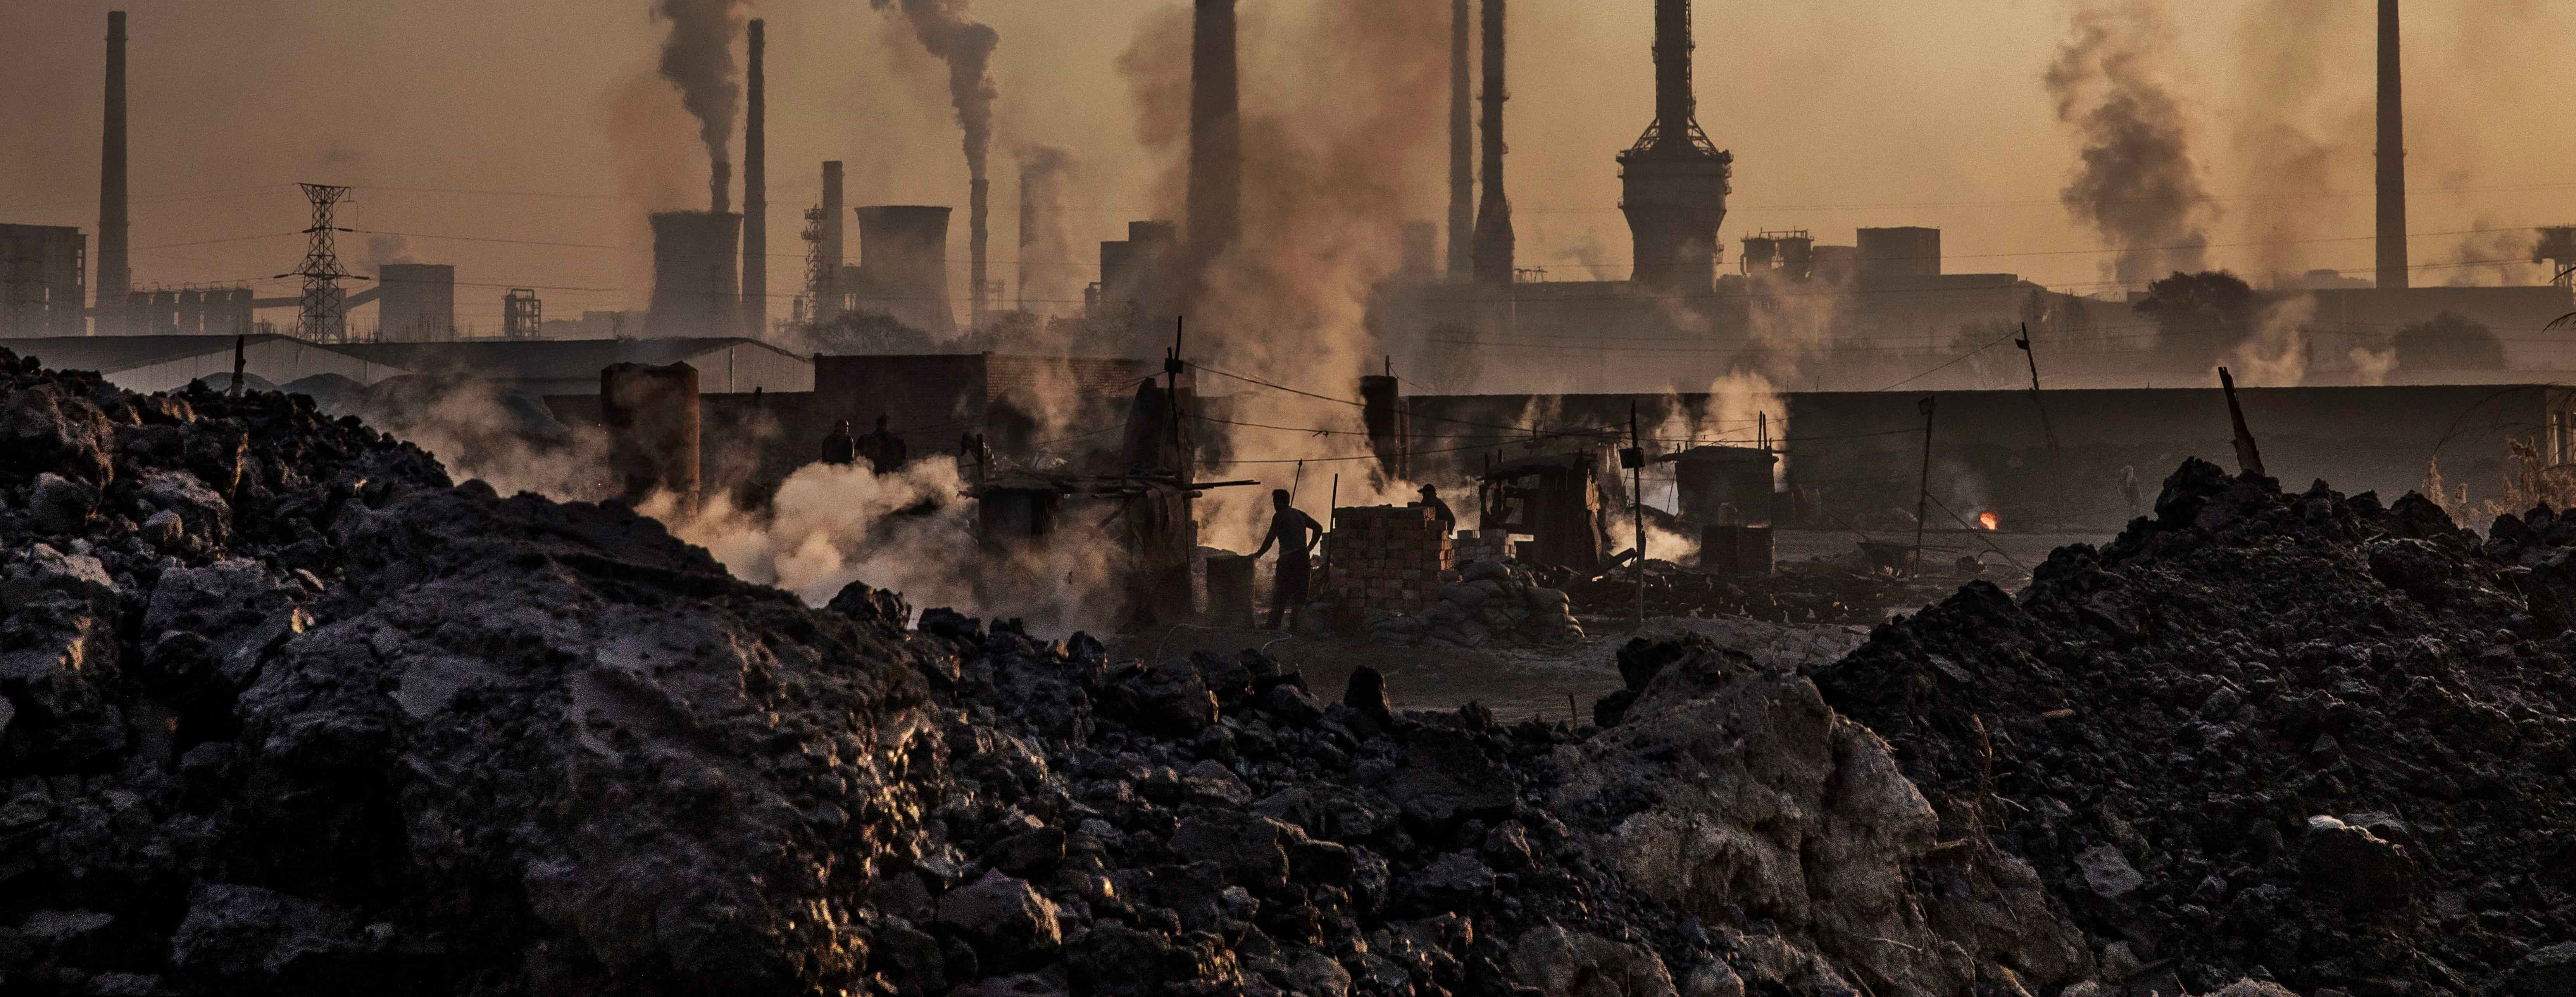 A steel plant in Inner Mongolia, China, November 2016. Photo: Getty Images/Kevin Frayer